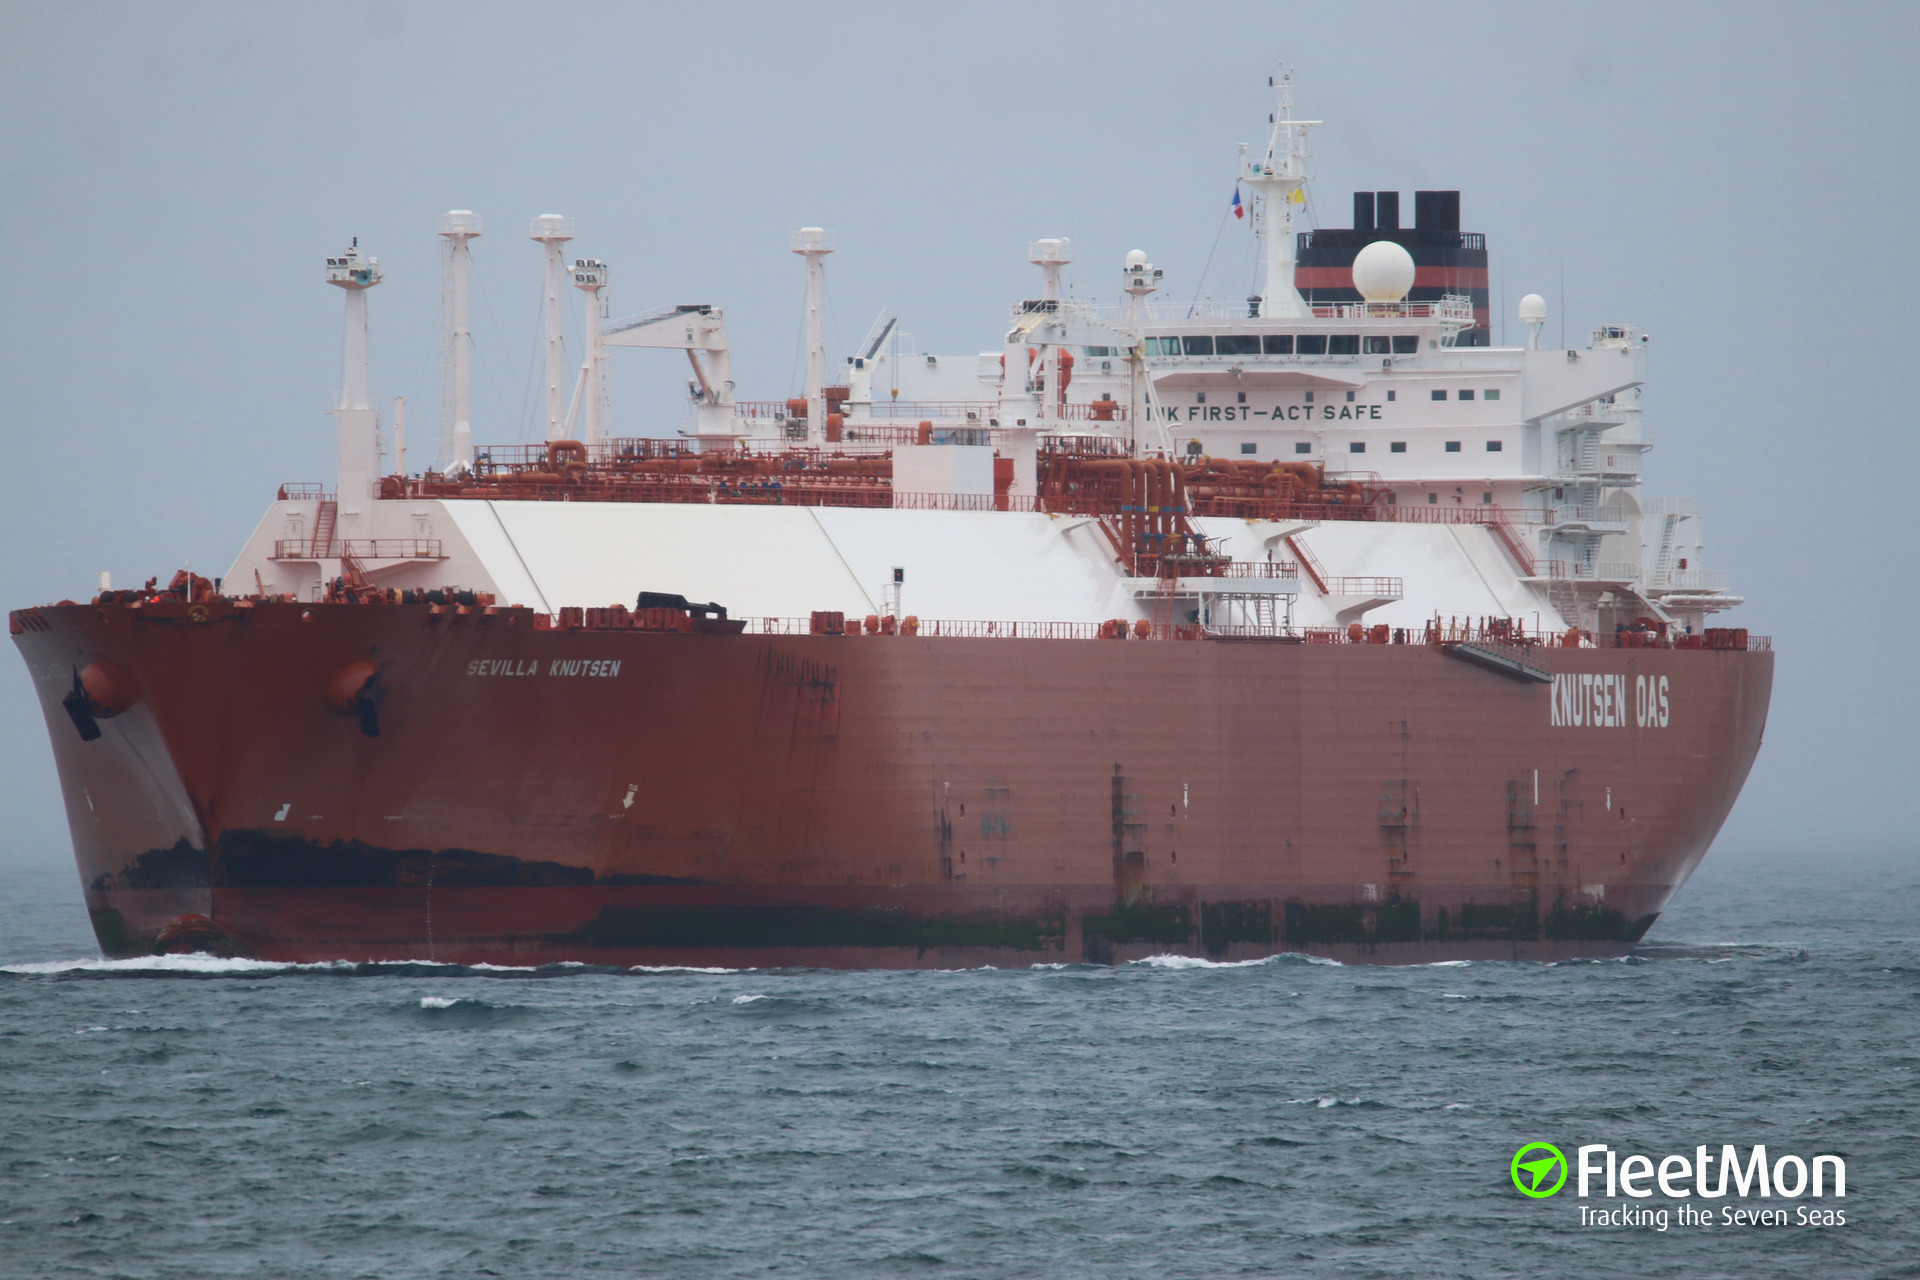 LNG tanker SEVILLA KNUTSEN struck uncharted reef in the Pacific, breached